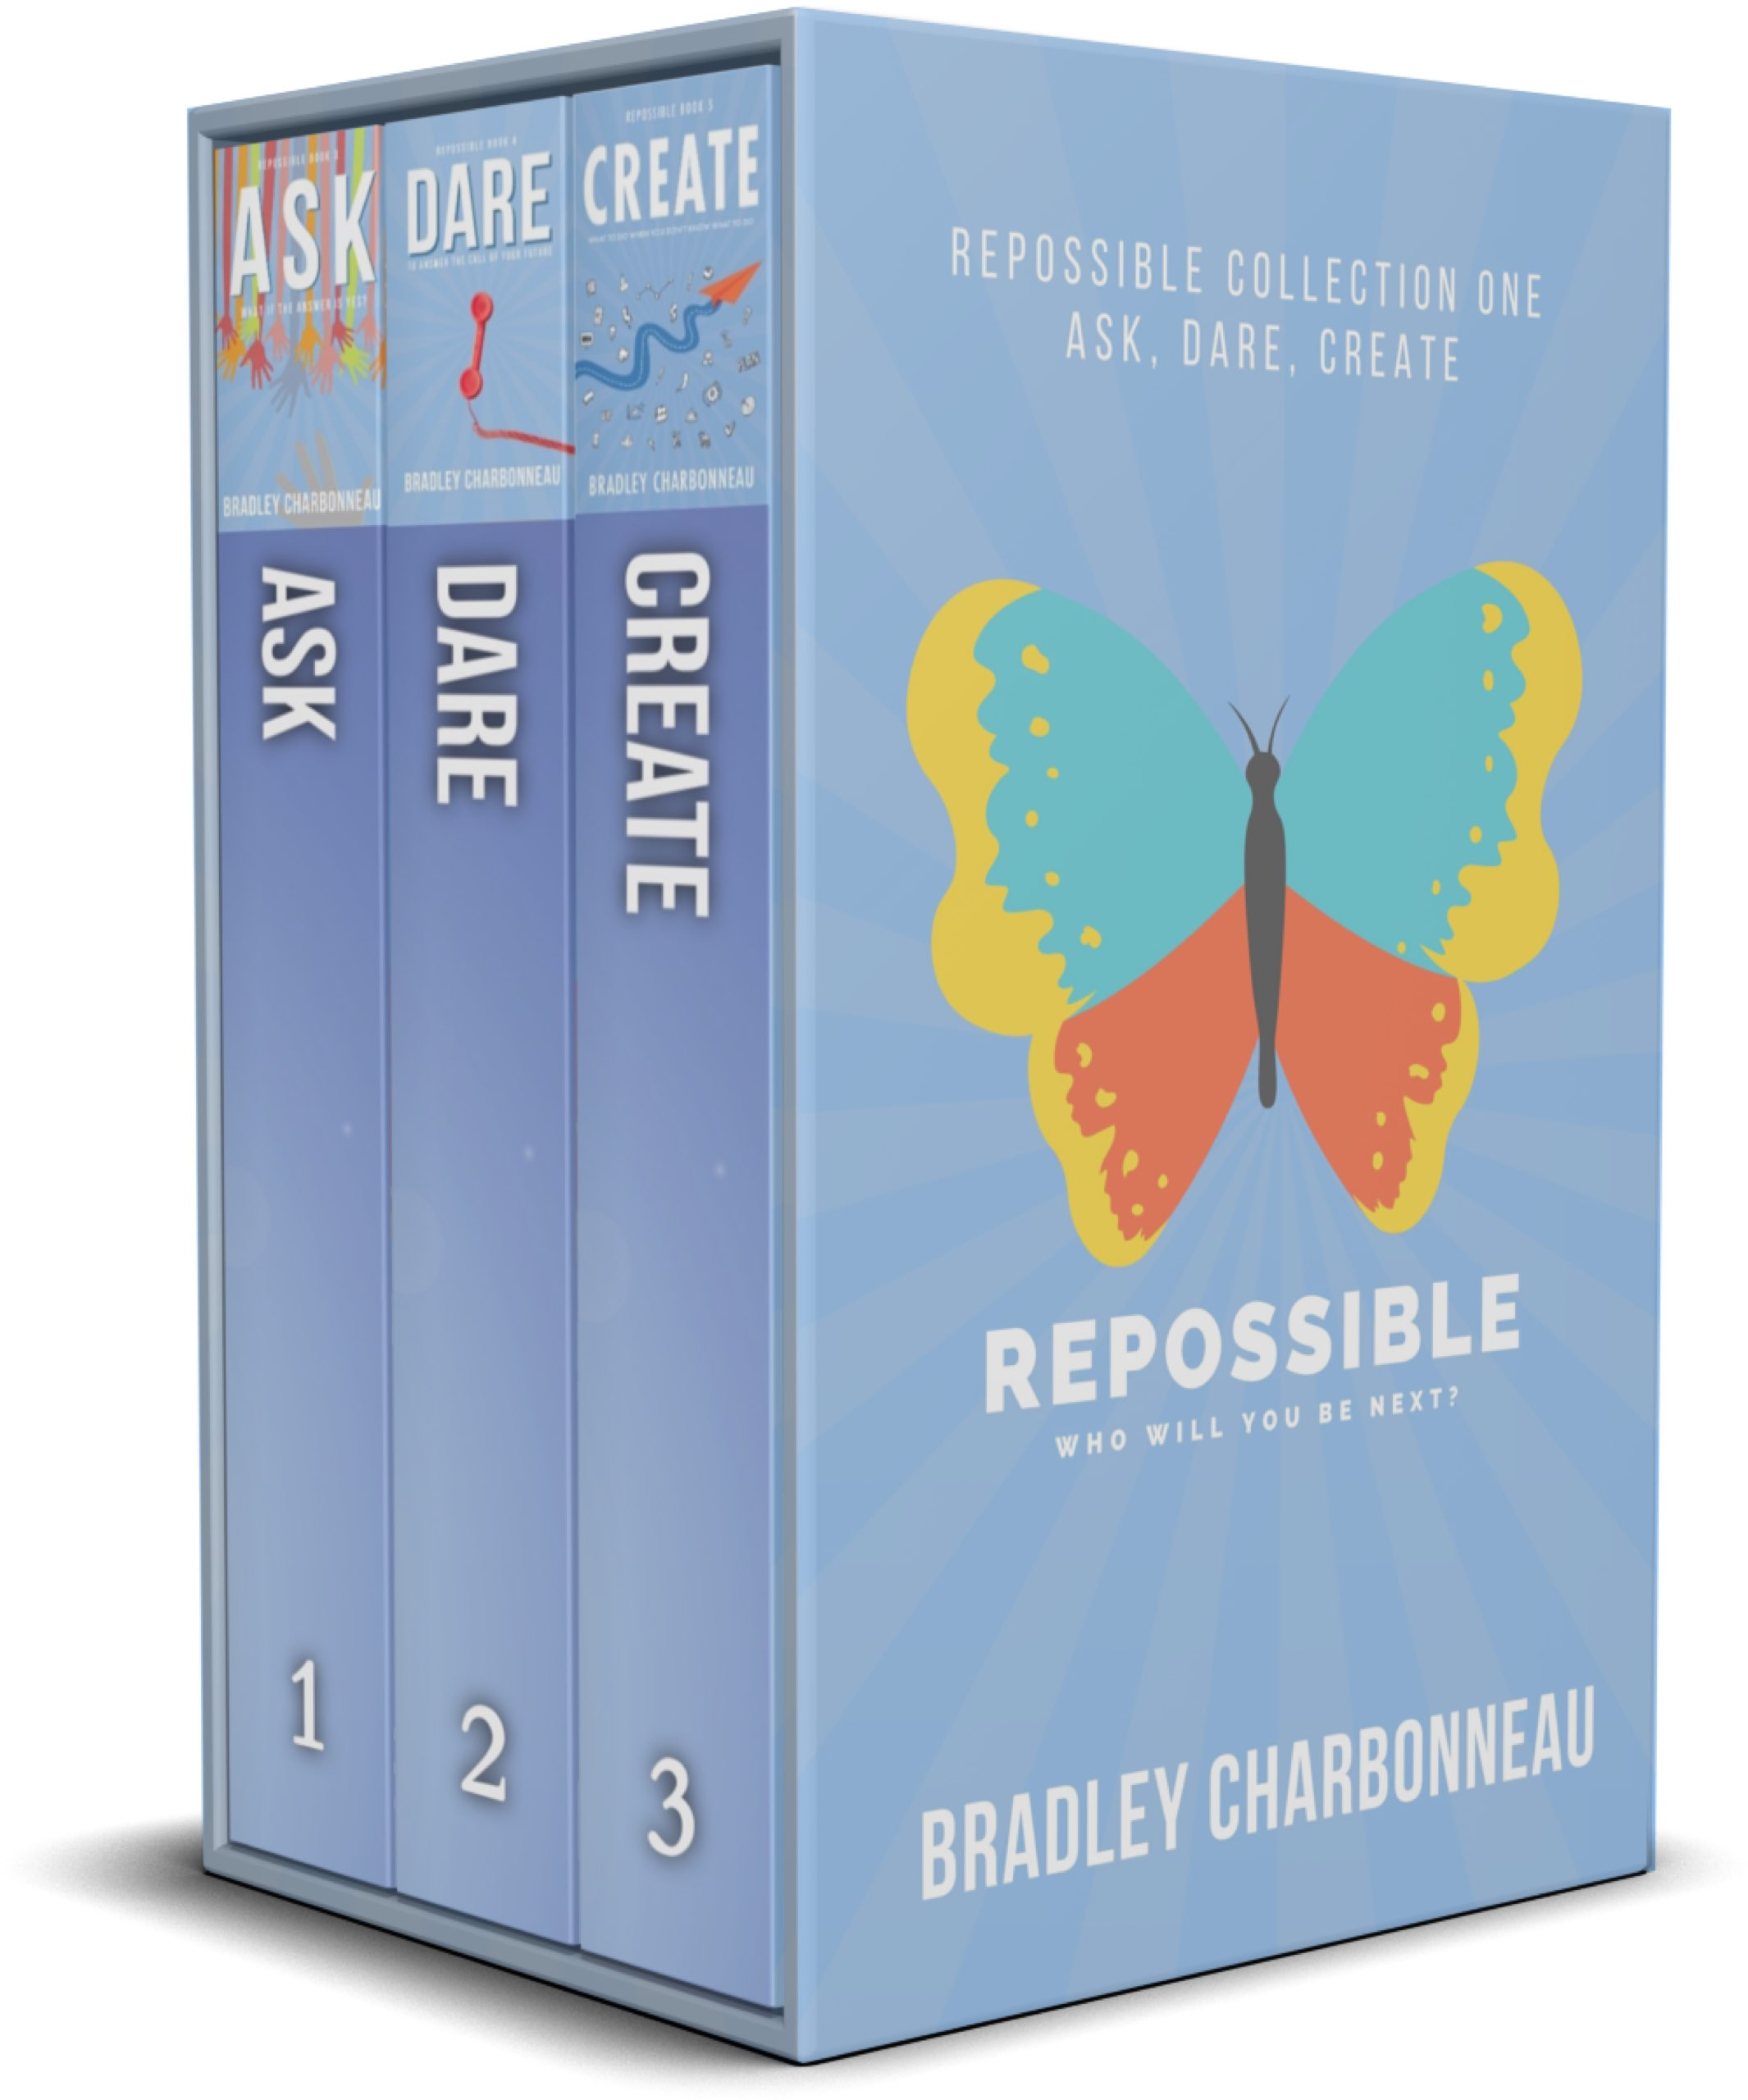 Repossible Collection 1